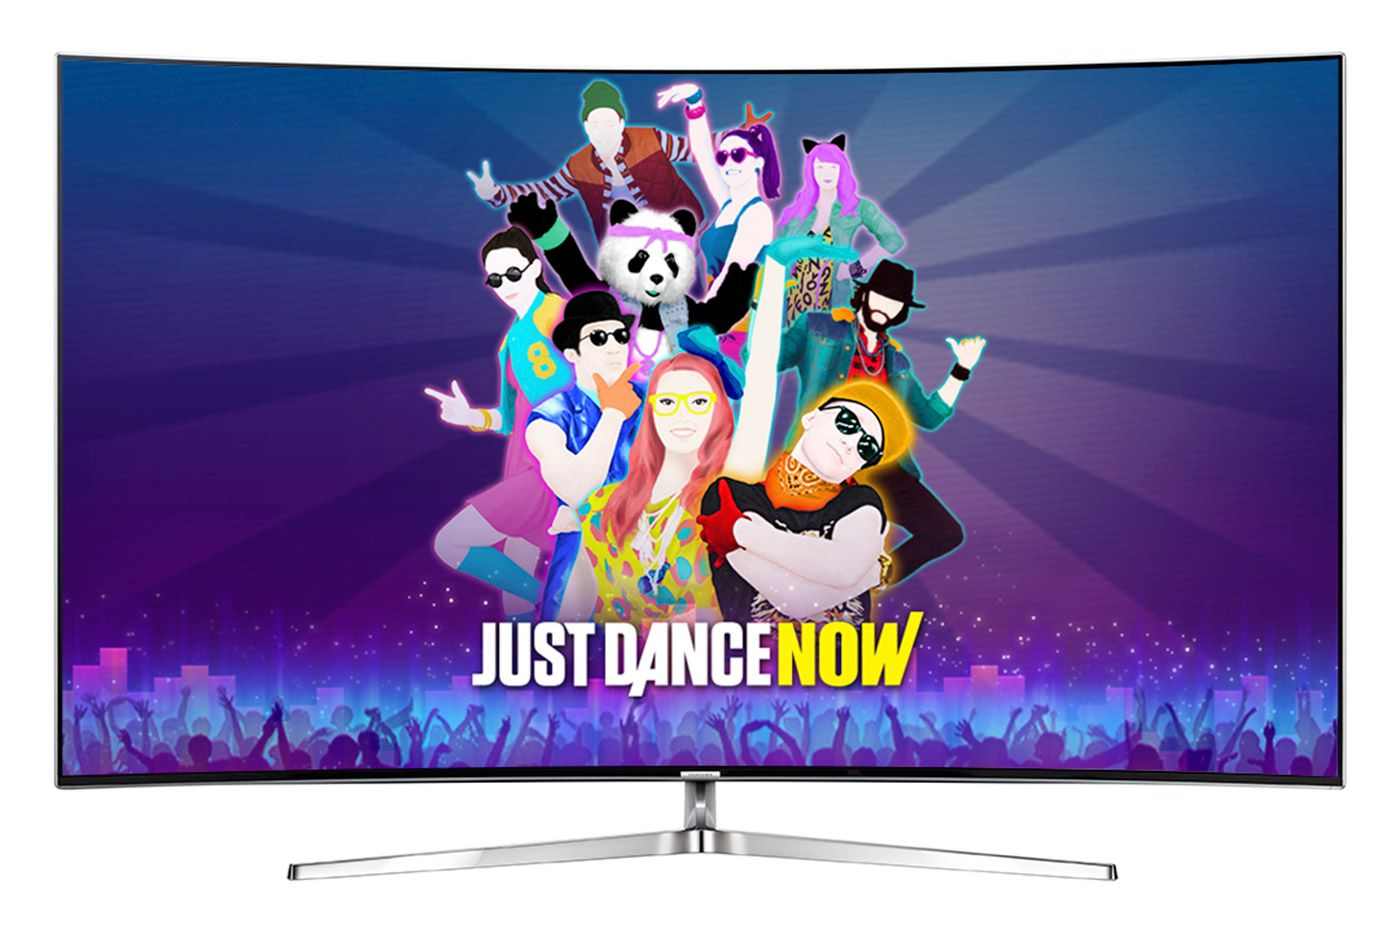 Samsung adds 'Just Dance Now' to its smart TV hub